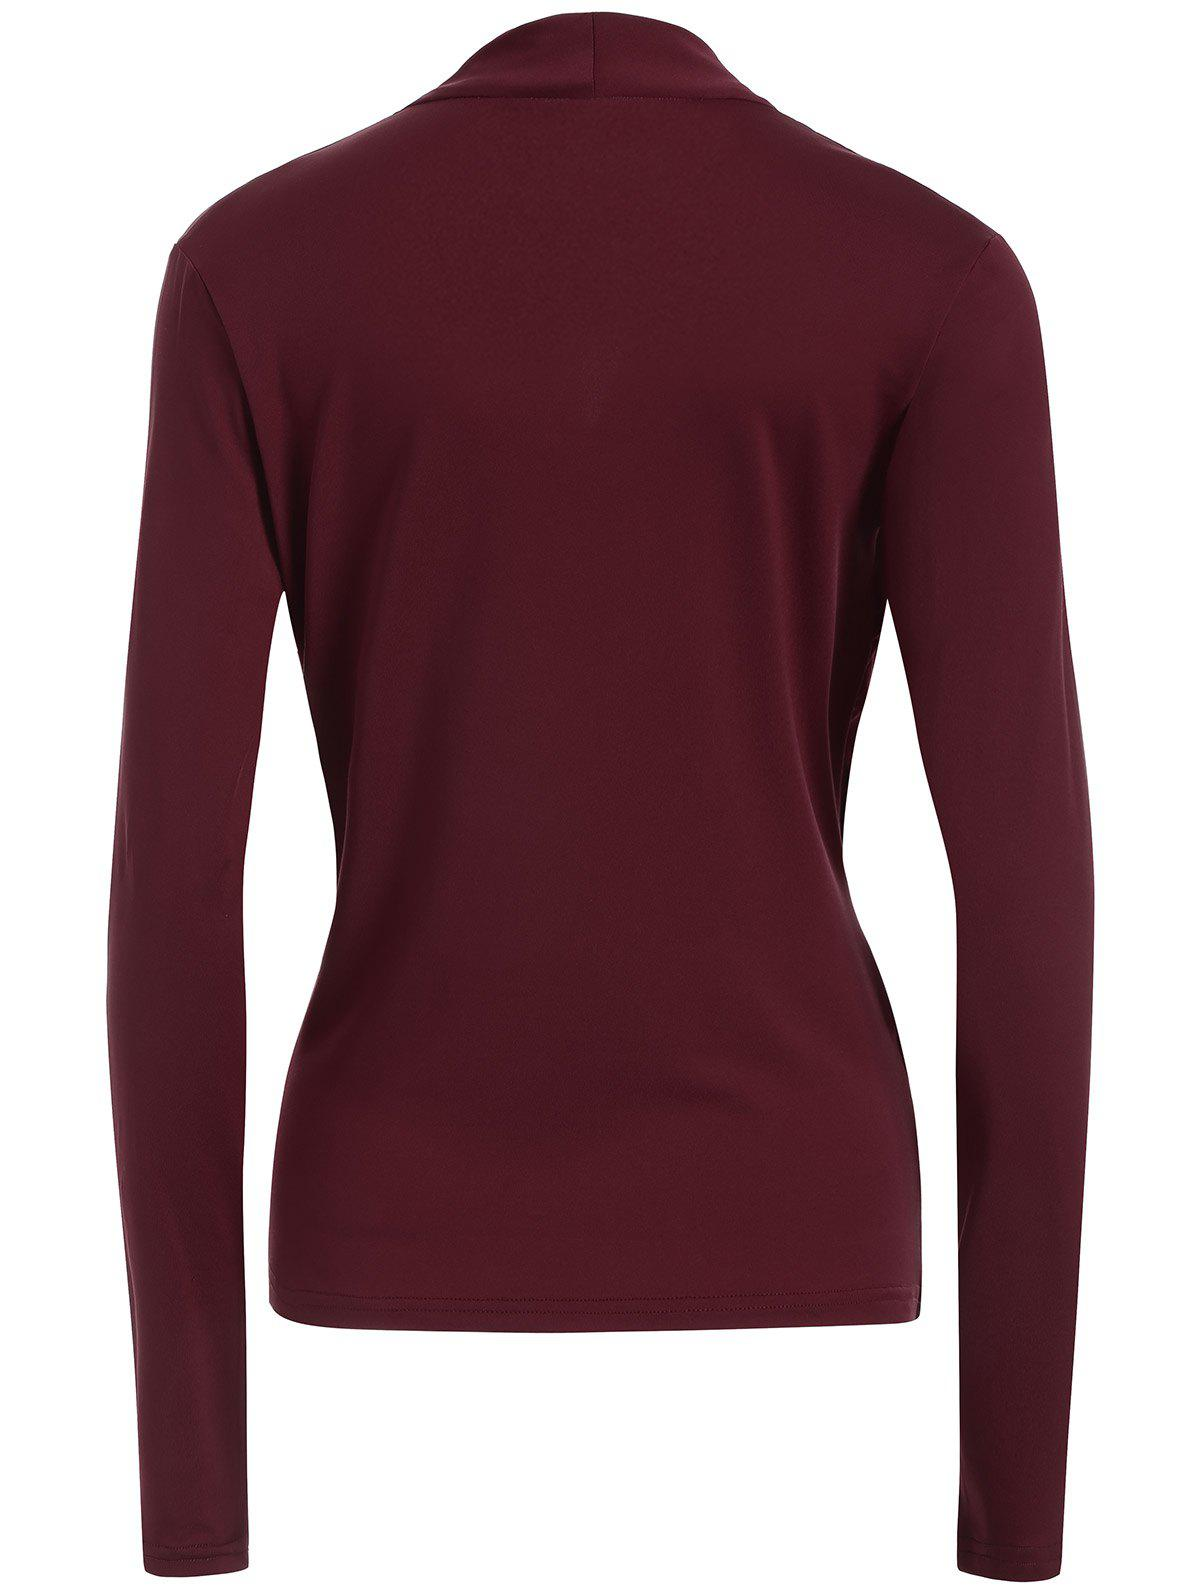 Surplice Stretchy Slimming T-Shirt - WINE RED XL